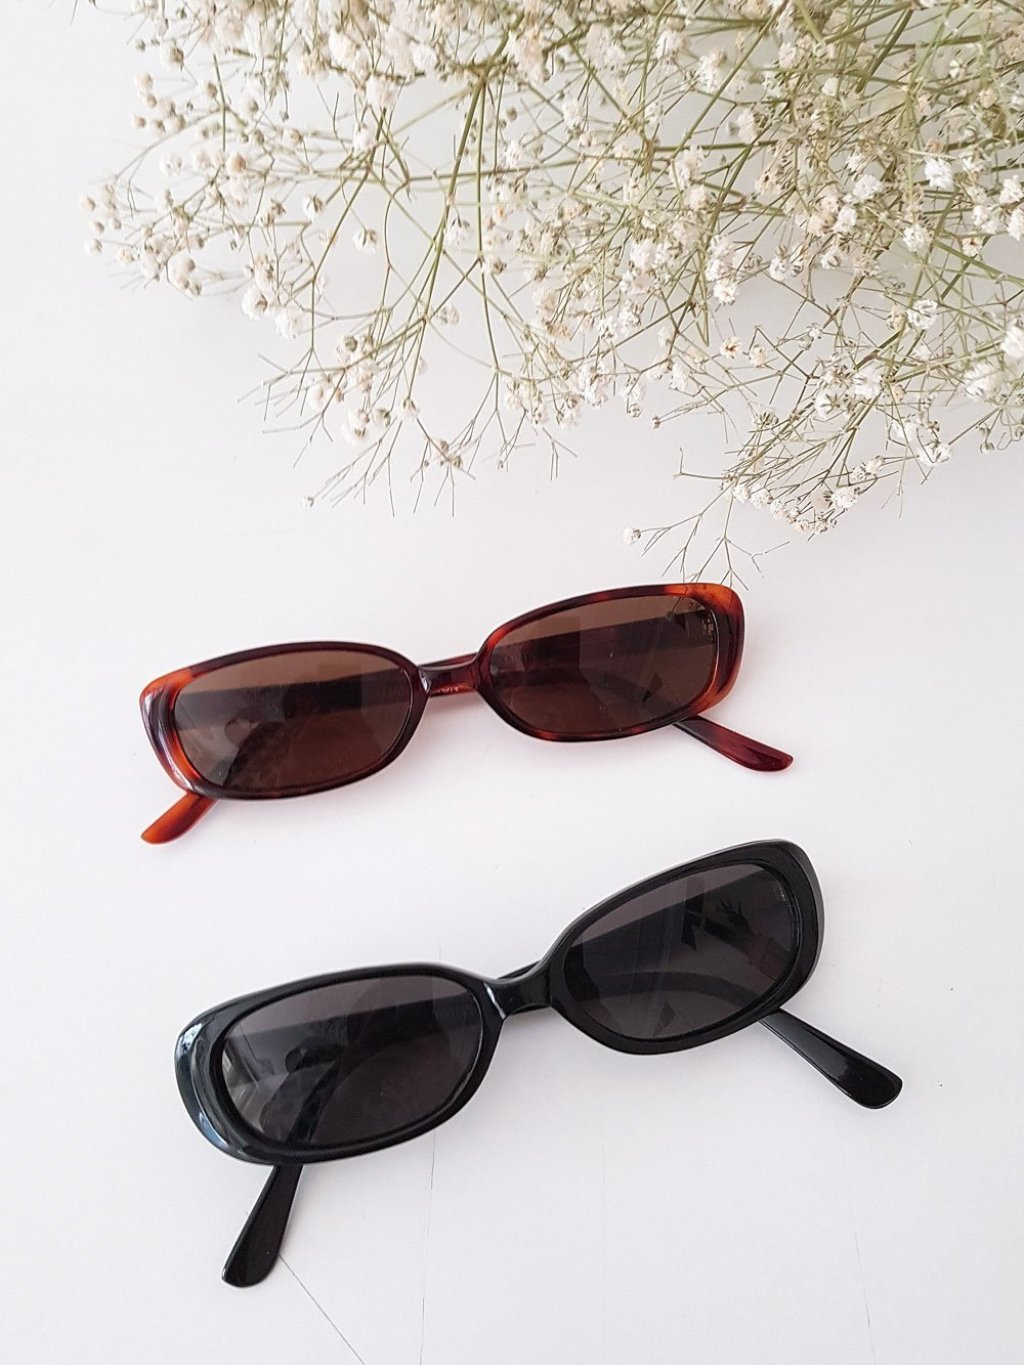 CAT V sunnies // 2 colors